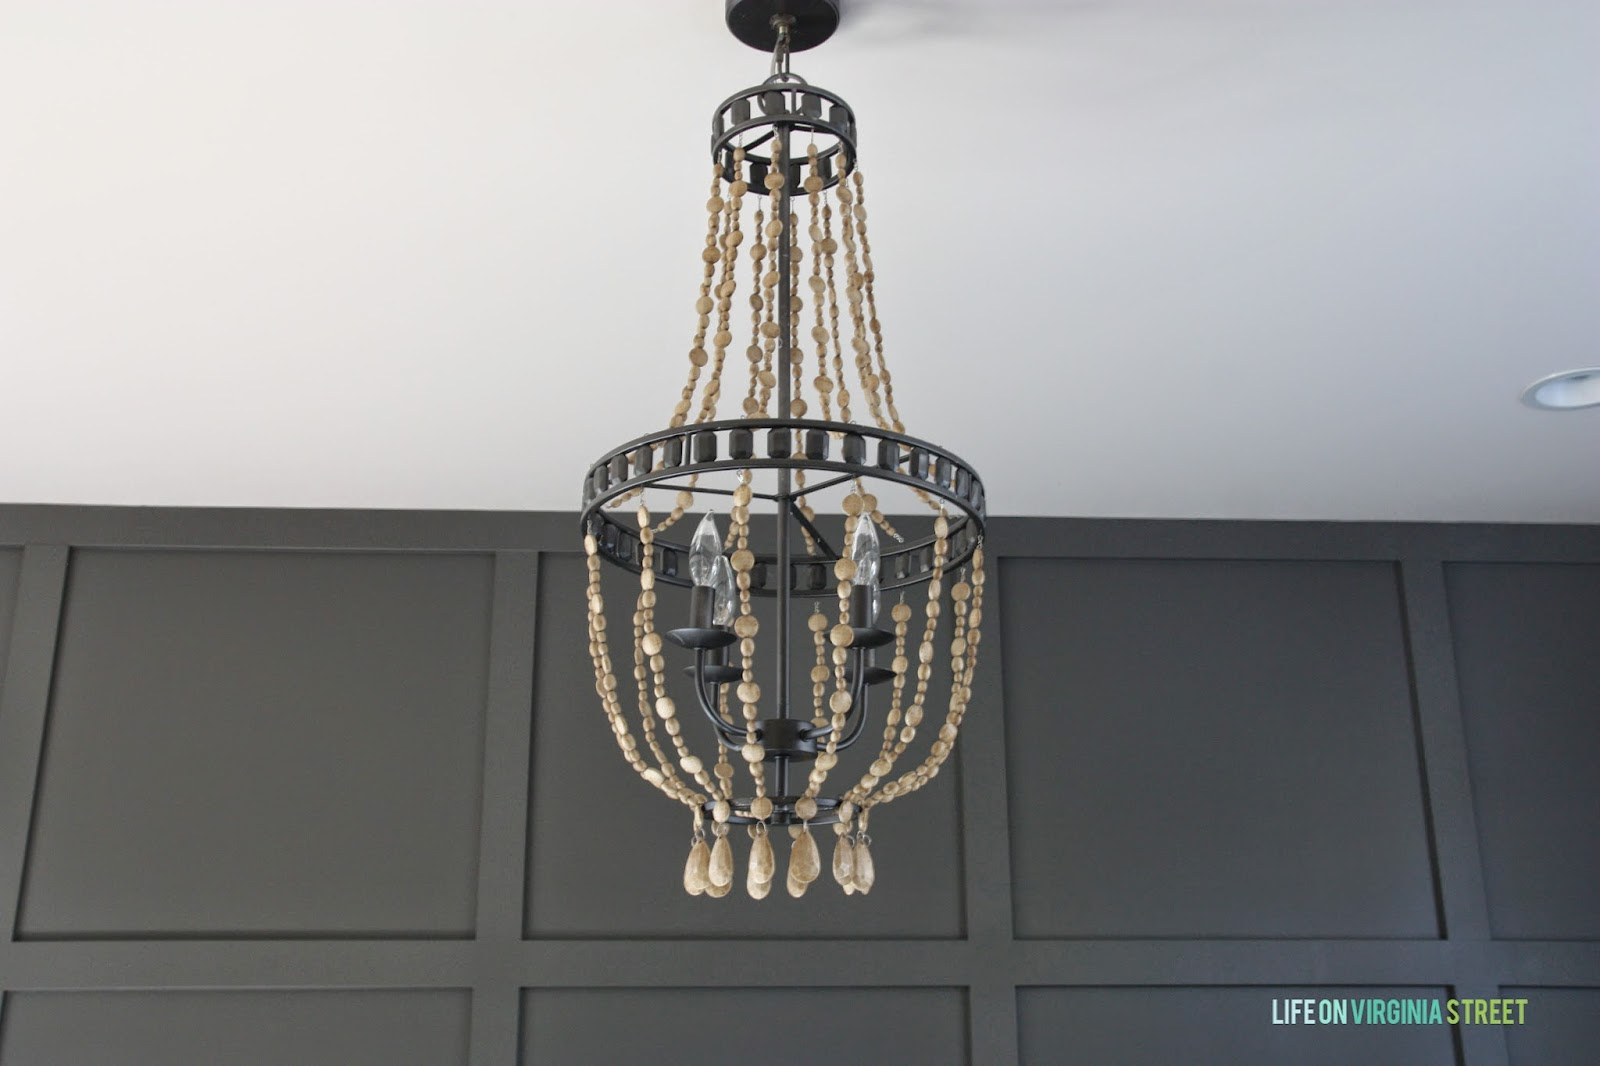 Remodelaholic home office makeover with diy wood bead chandelier diy chandelier with faux wooden beads life on virginia street on remodelaholic arubaitofo Image collections